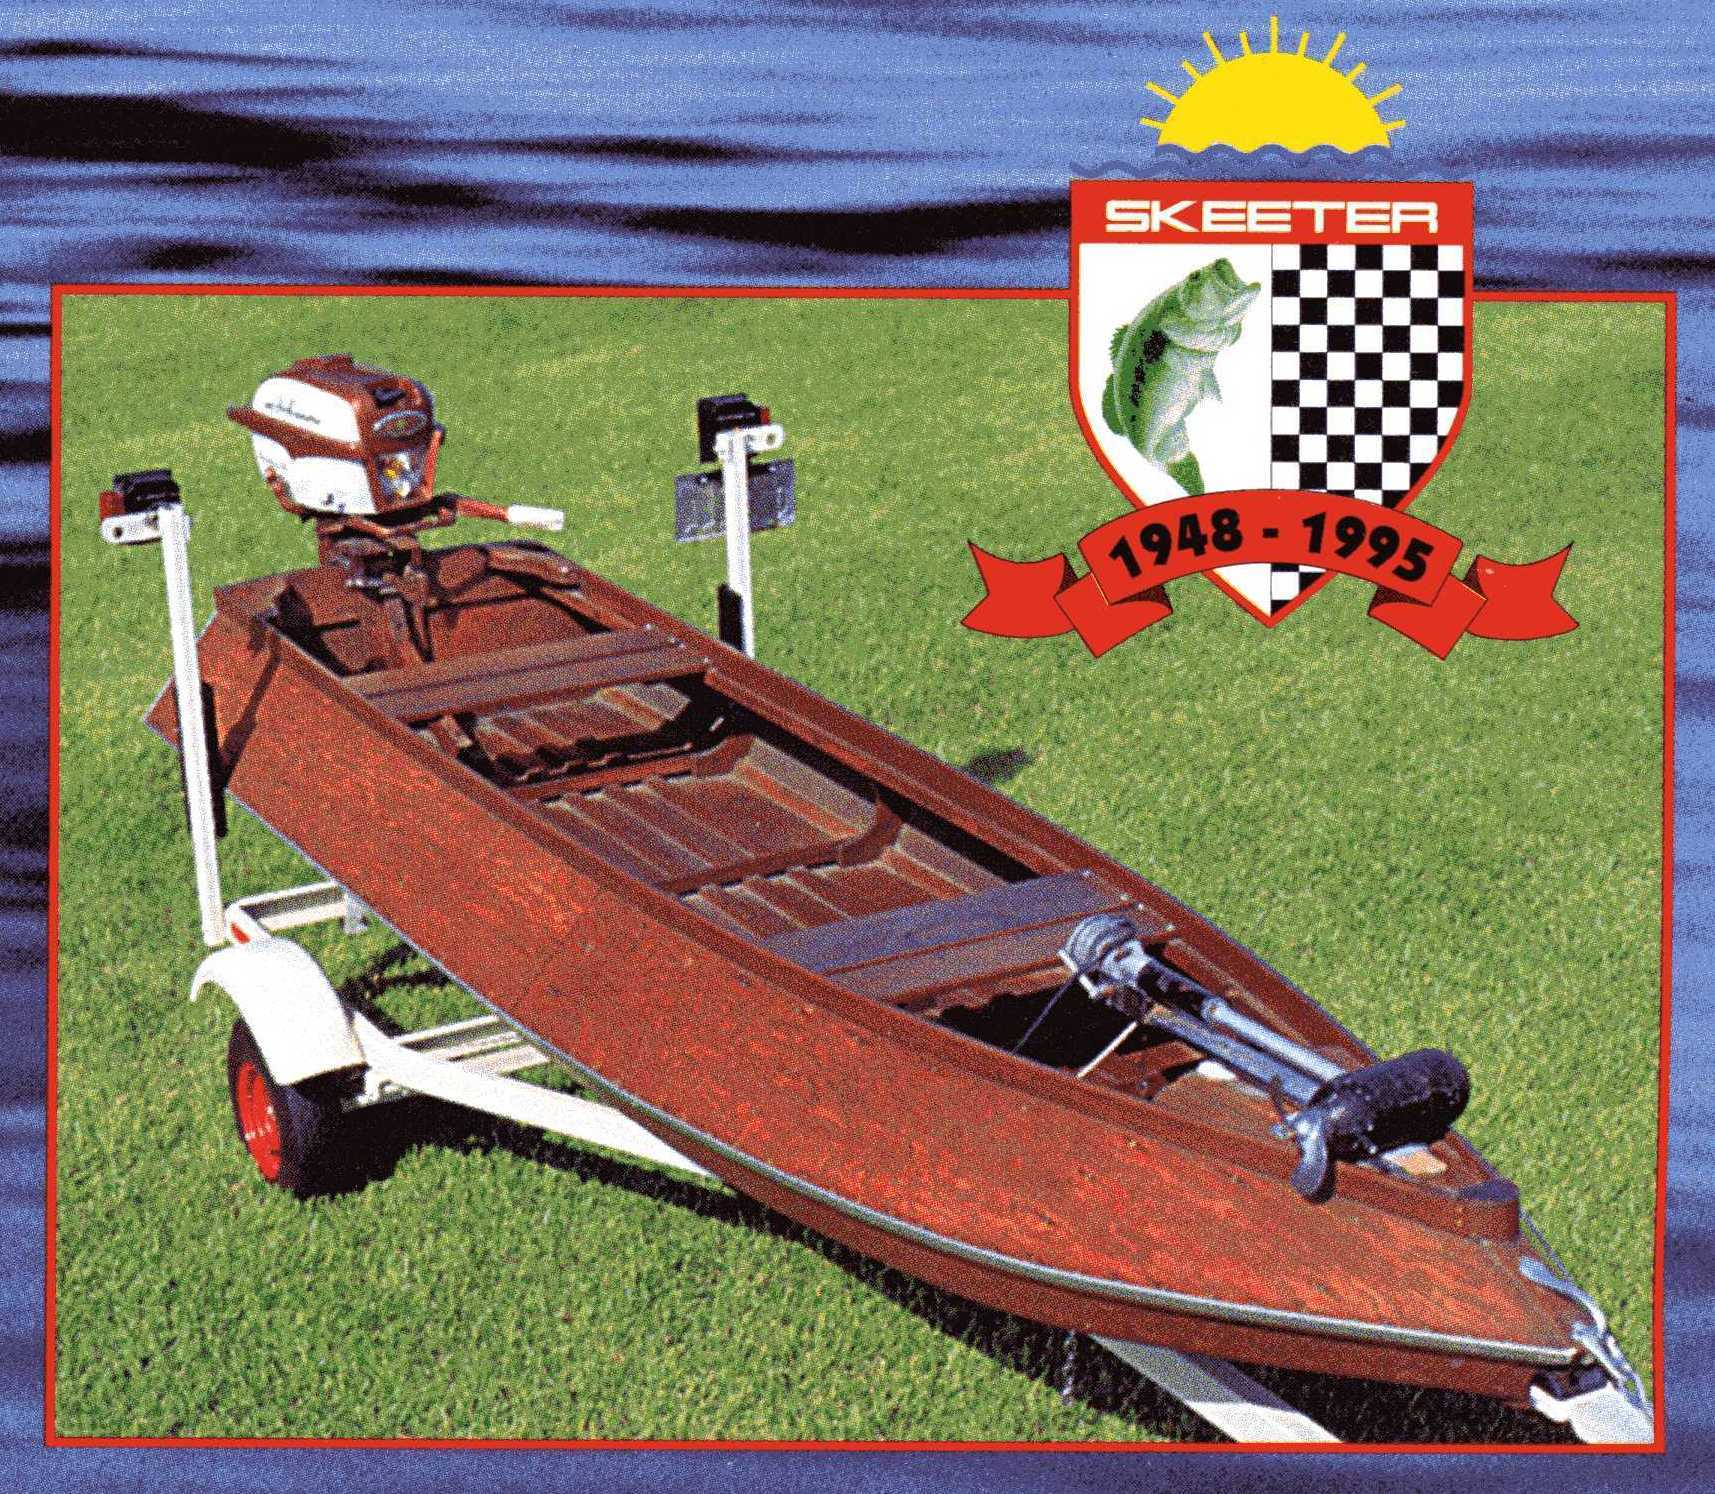 Most Expensive Bass Boat In The World